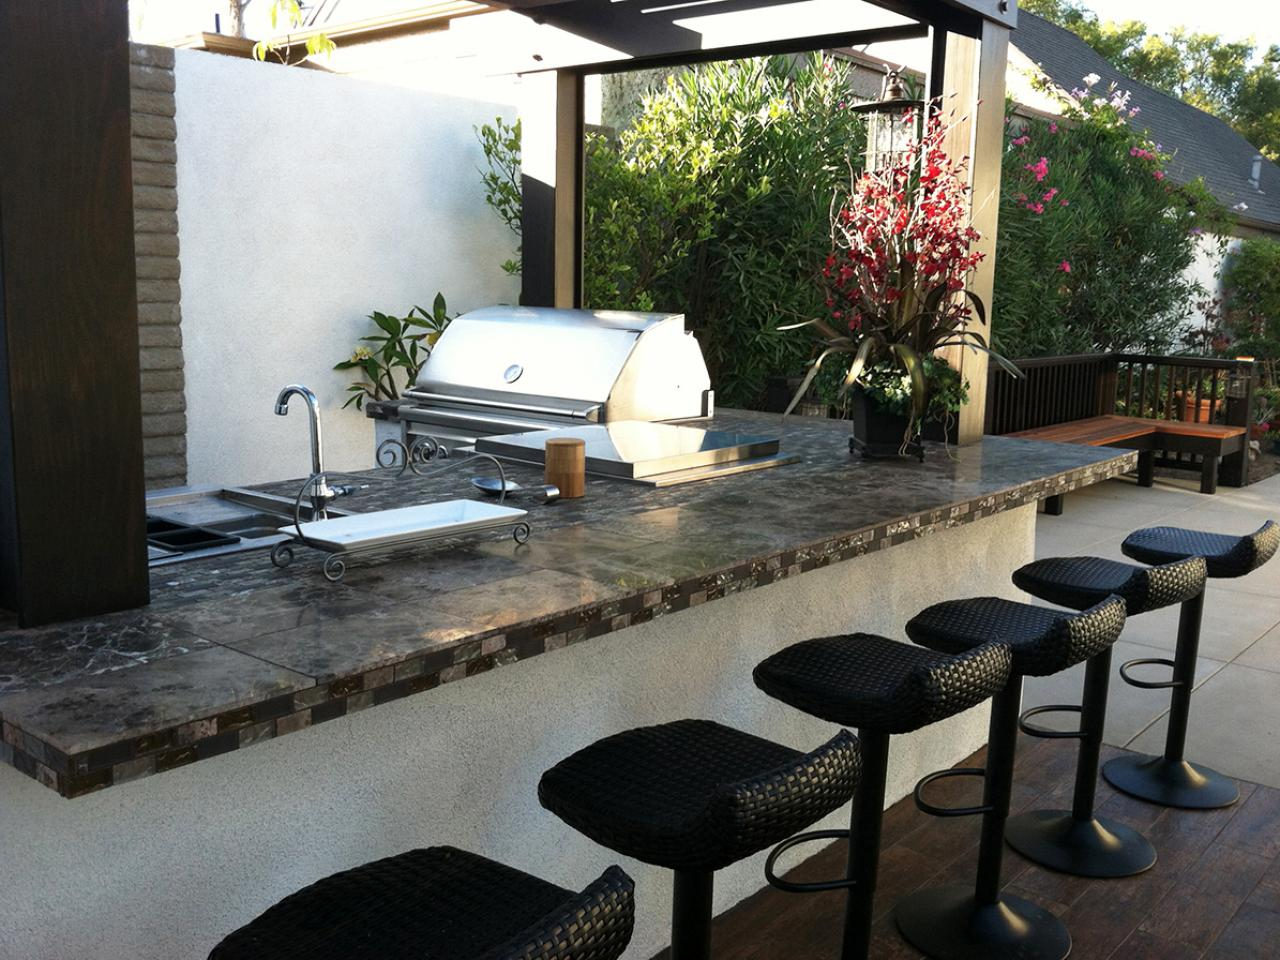 outdoor kitchen design ideas pictures tips expert advice hgtv - Outdoor Kitchen Ideas Designs